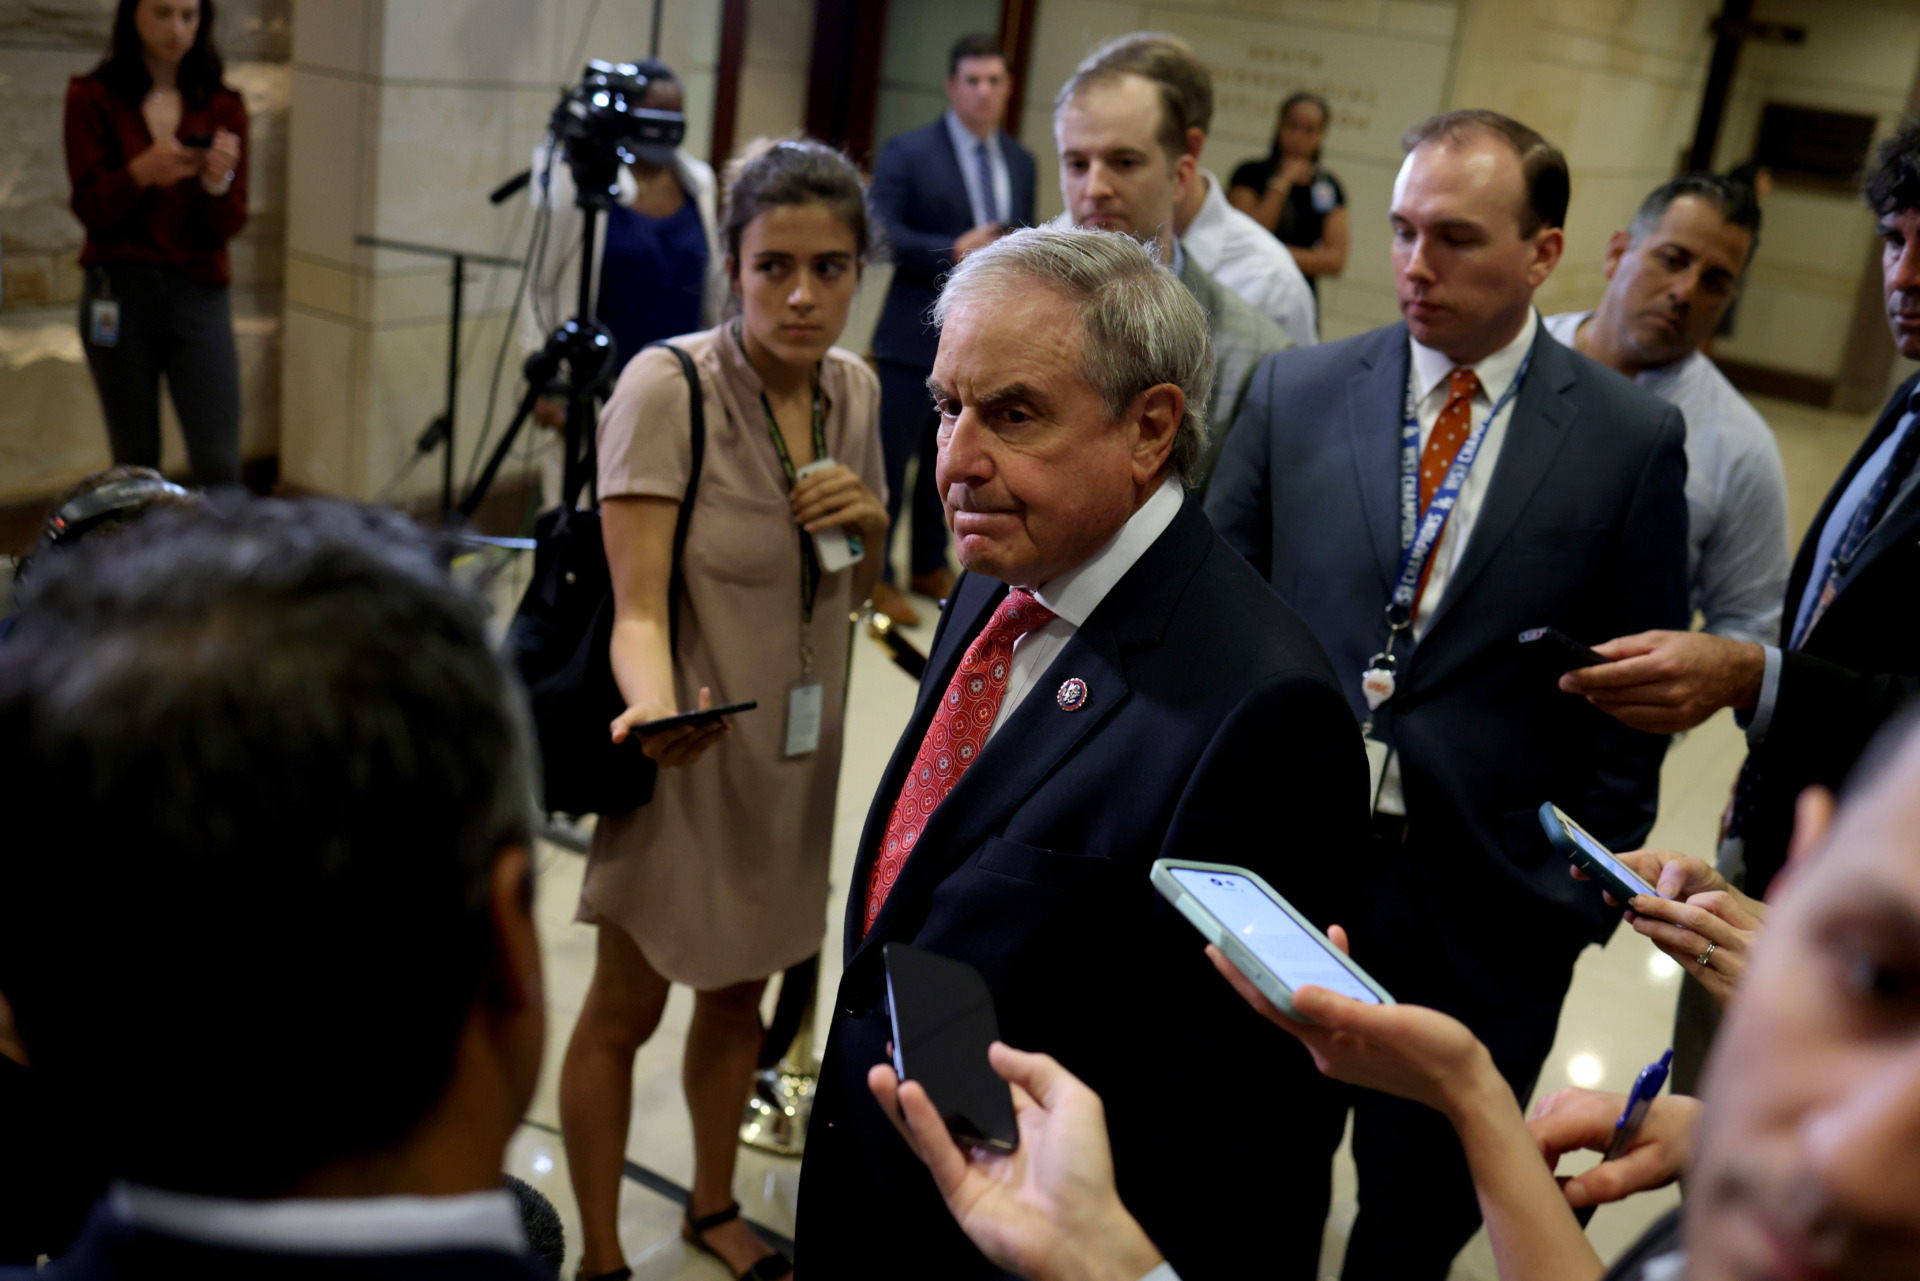 WASHINGTON, DC - JUNE 15: Rep. John Yarmuth (D-KY), Chairman of the House Budget Committee, speaks to reporters after a House Democratic Caucus meeting in the Capitol Visitor Center on June 15, 2021 in Washington, DC. The closed door caucus meeting was held in person for the first time since the start of the Covid-19 pandemic. (Photo by Anna Moneymaker/Getty Images)